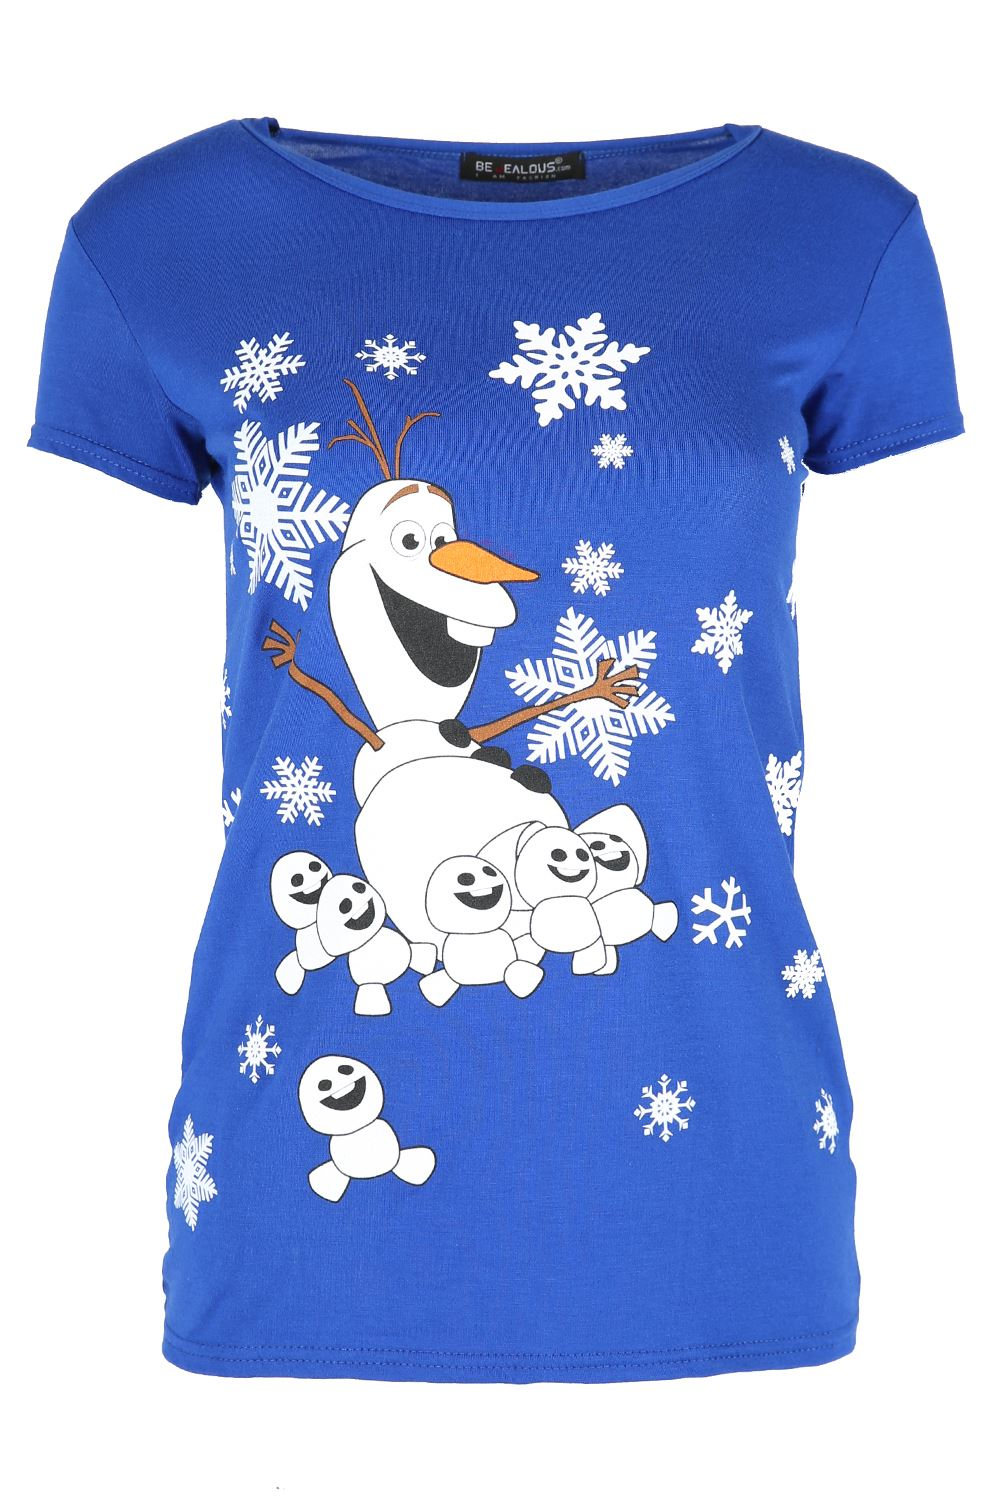 Womens-Ladies-Xmas-Reindeer-Wall-Snowfall-Jersey-Stretch-Christmas-T-Shirt-Top